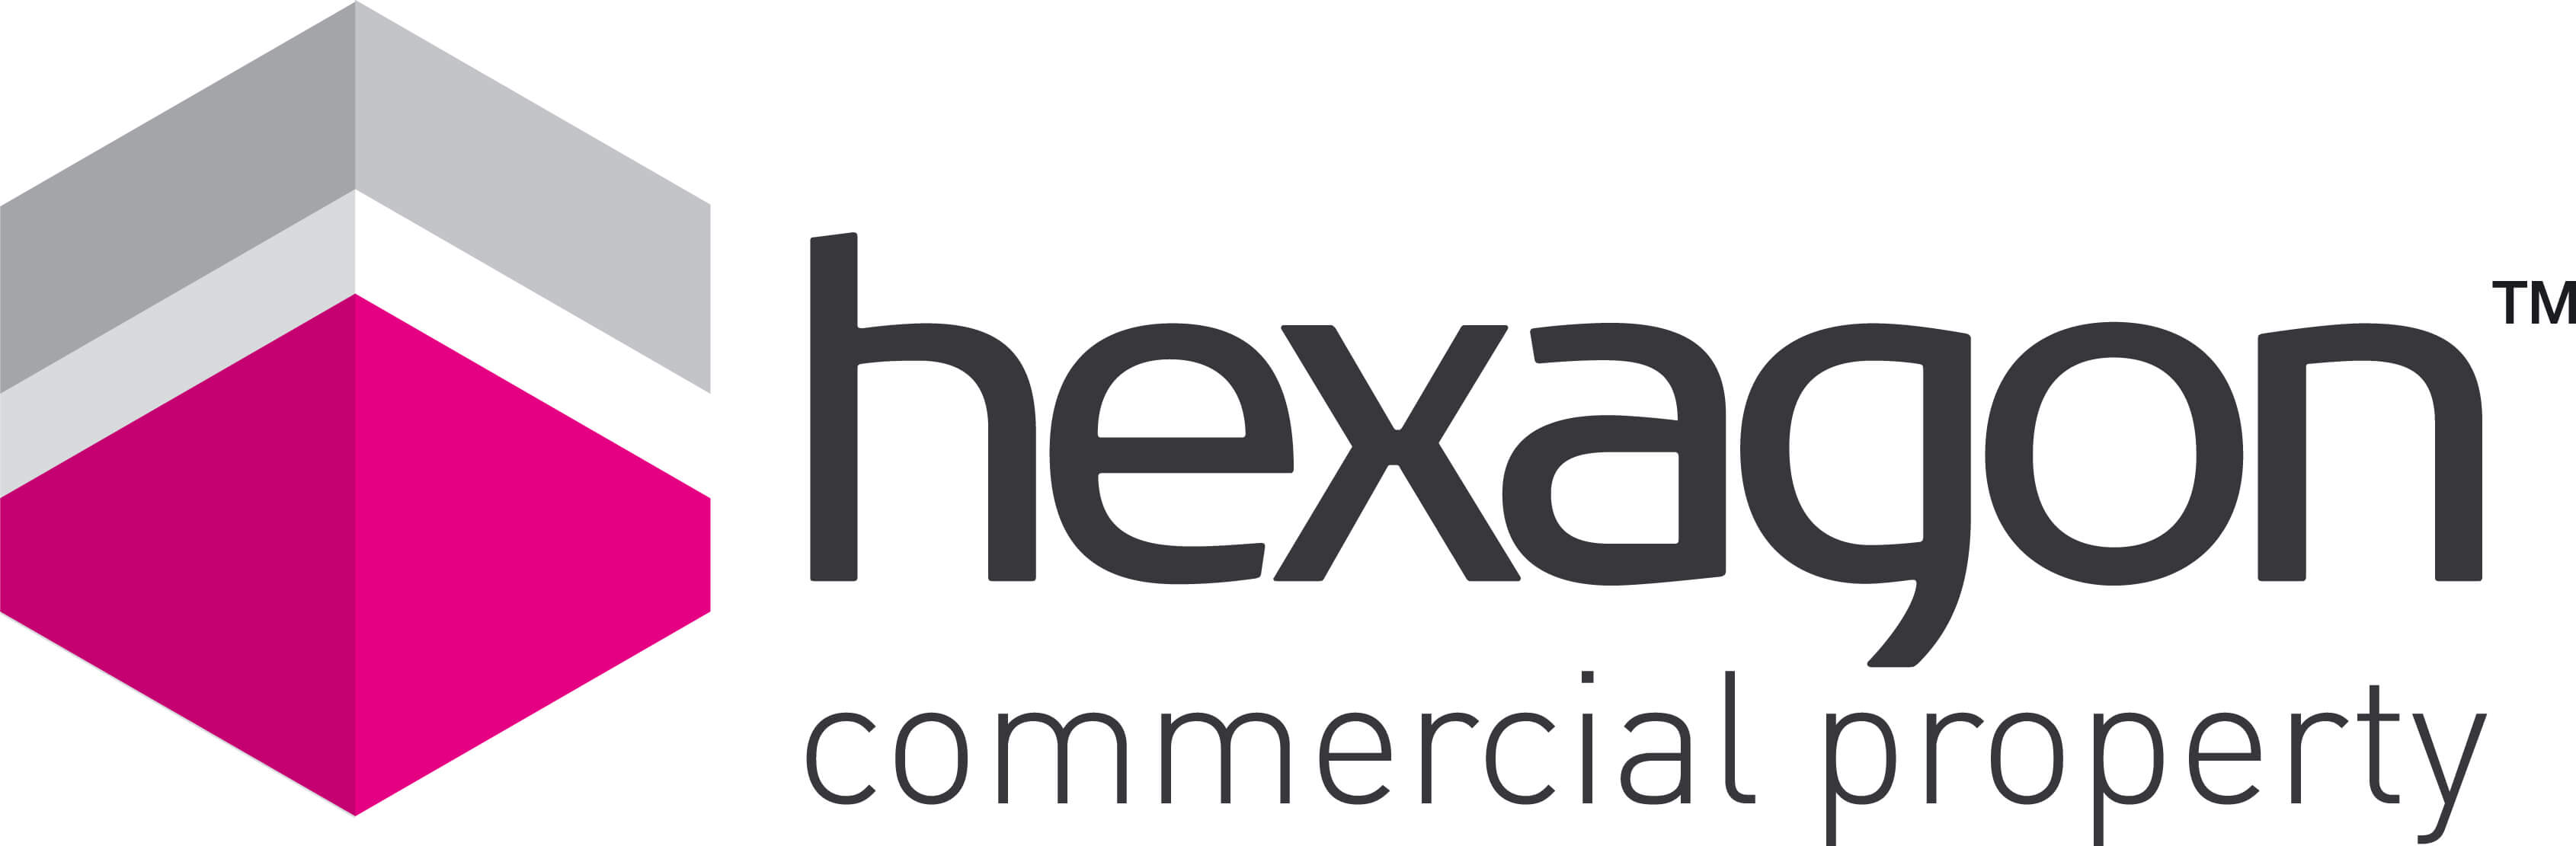 hexagon-commercial-property